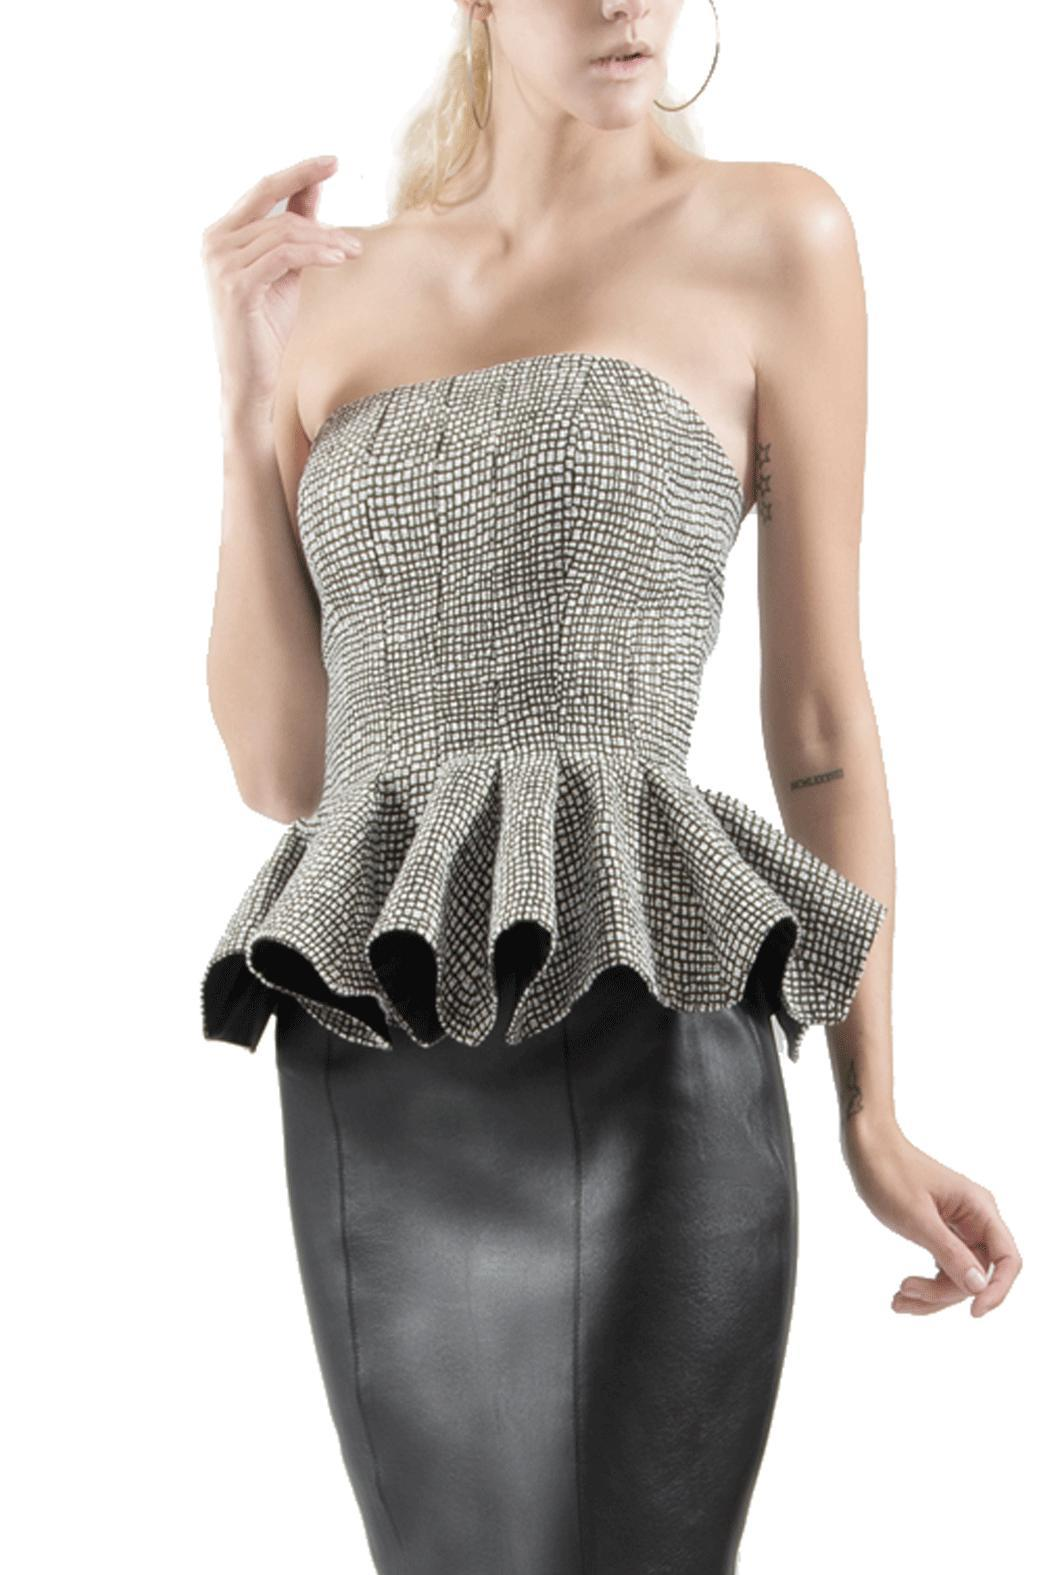 14338a203f3 Viesca y Viesca Strapless Peplum Blouse from Mexico — Shoptiques